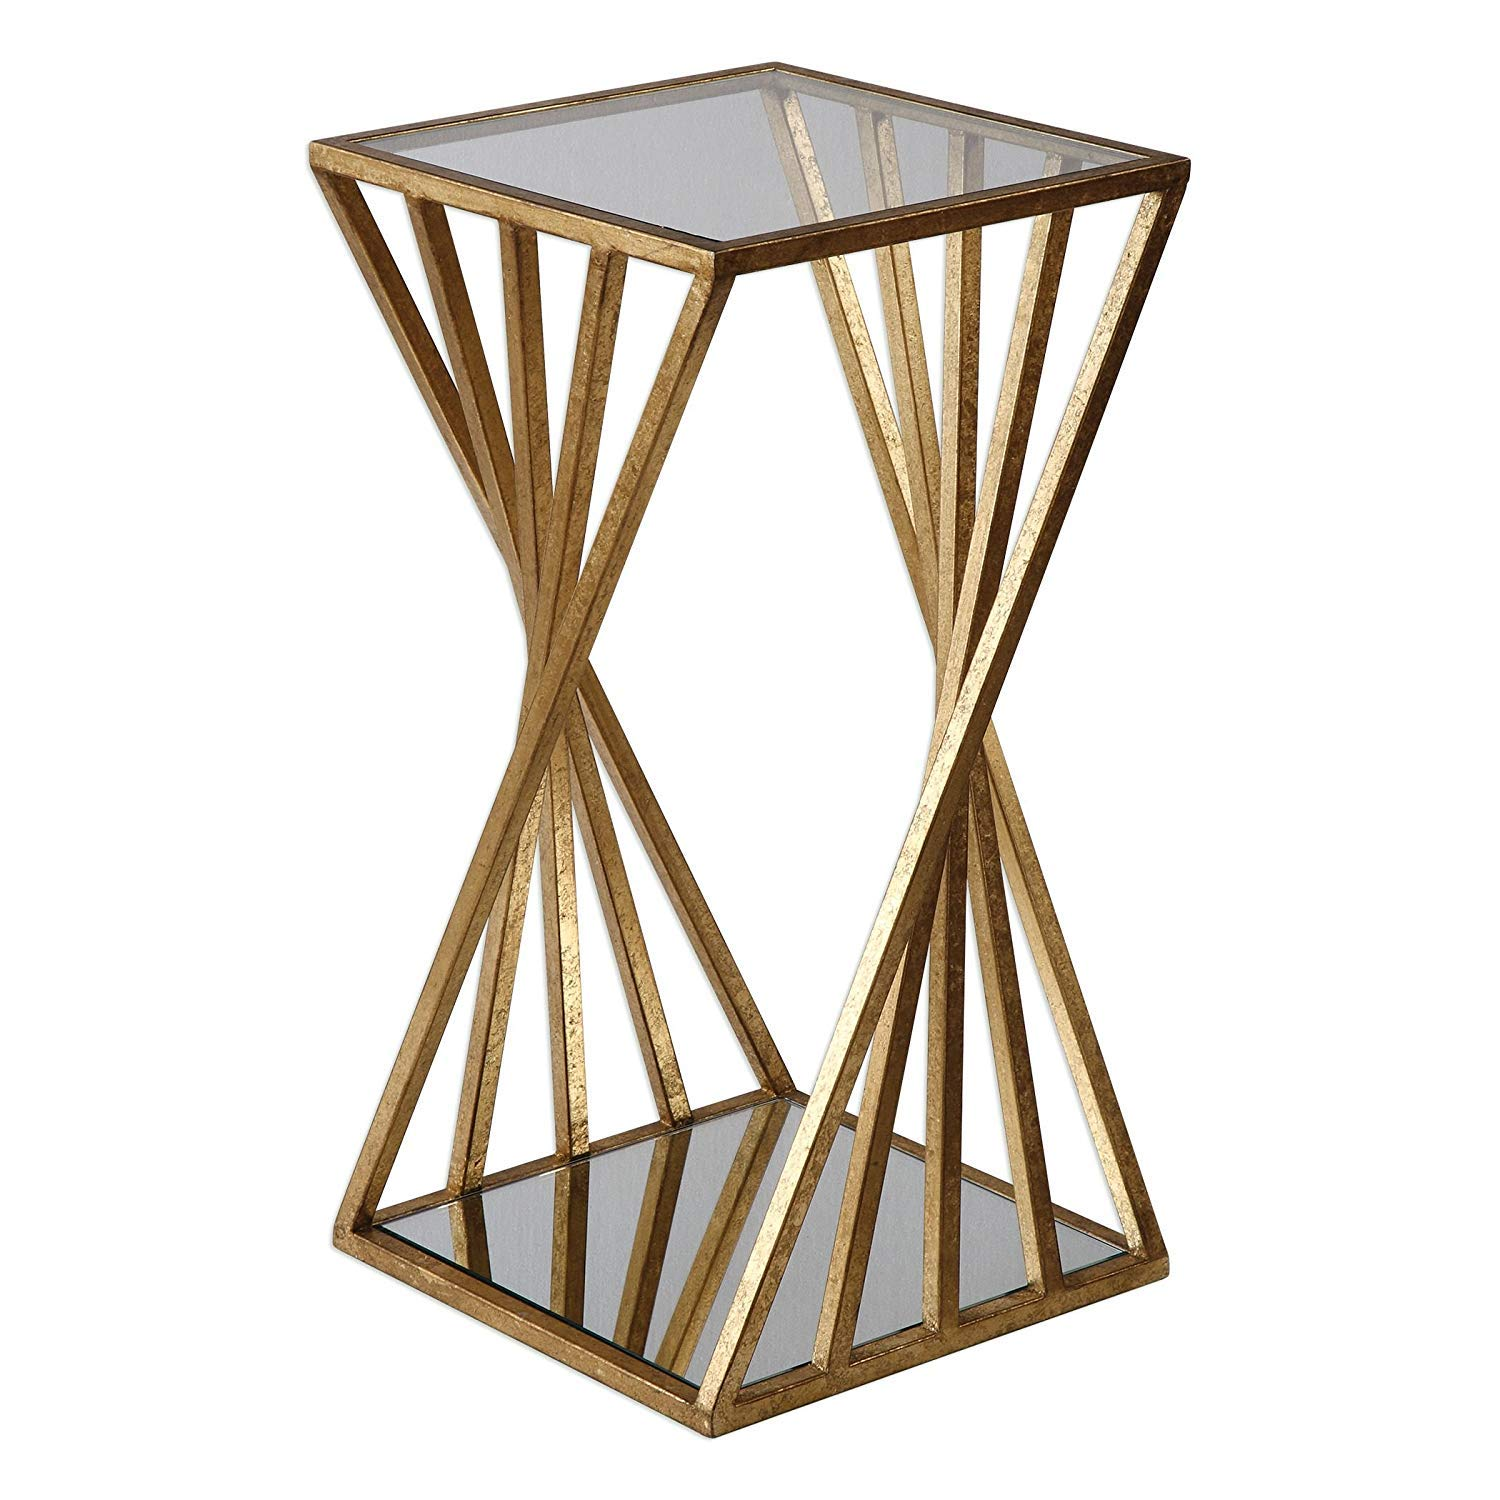 gold angle geometric square accent table open pedestal wood column modern kitchen dining decorative inch round covers nautical globe lights better homes and gardens furniture